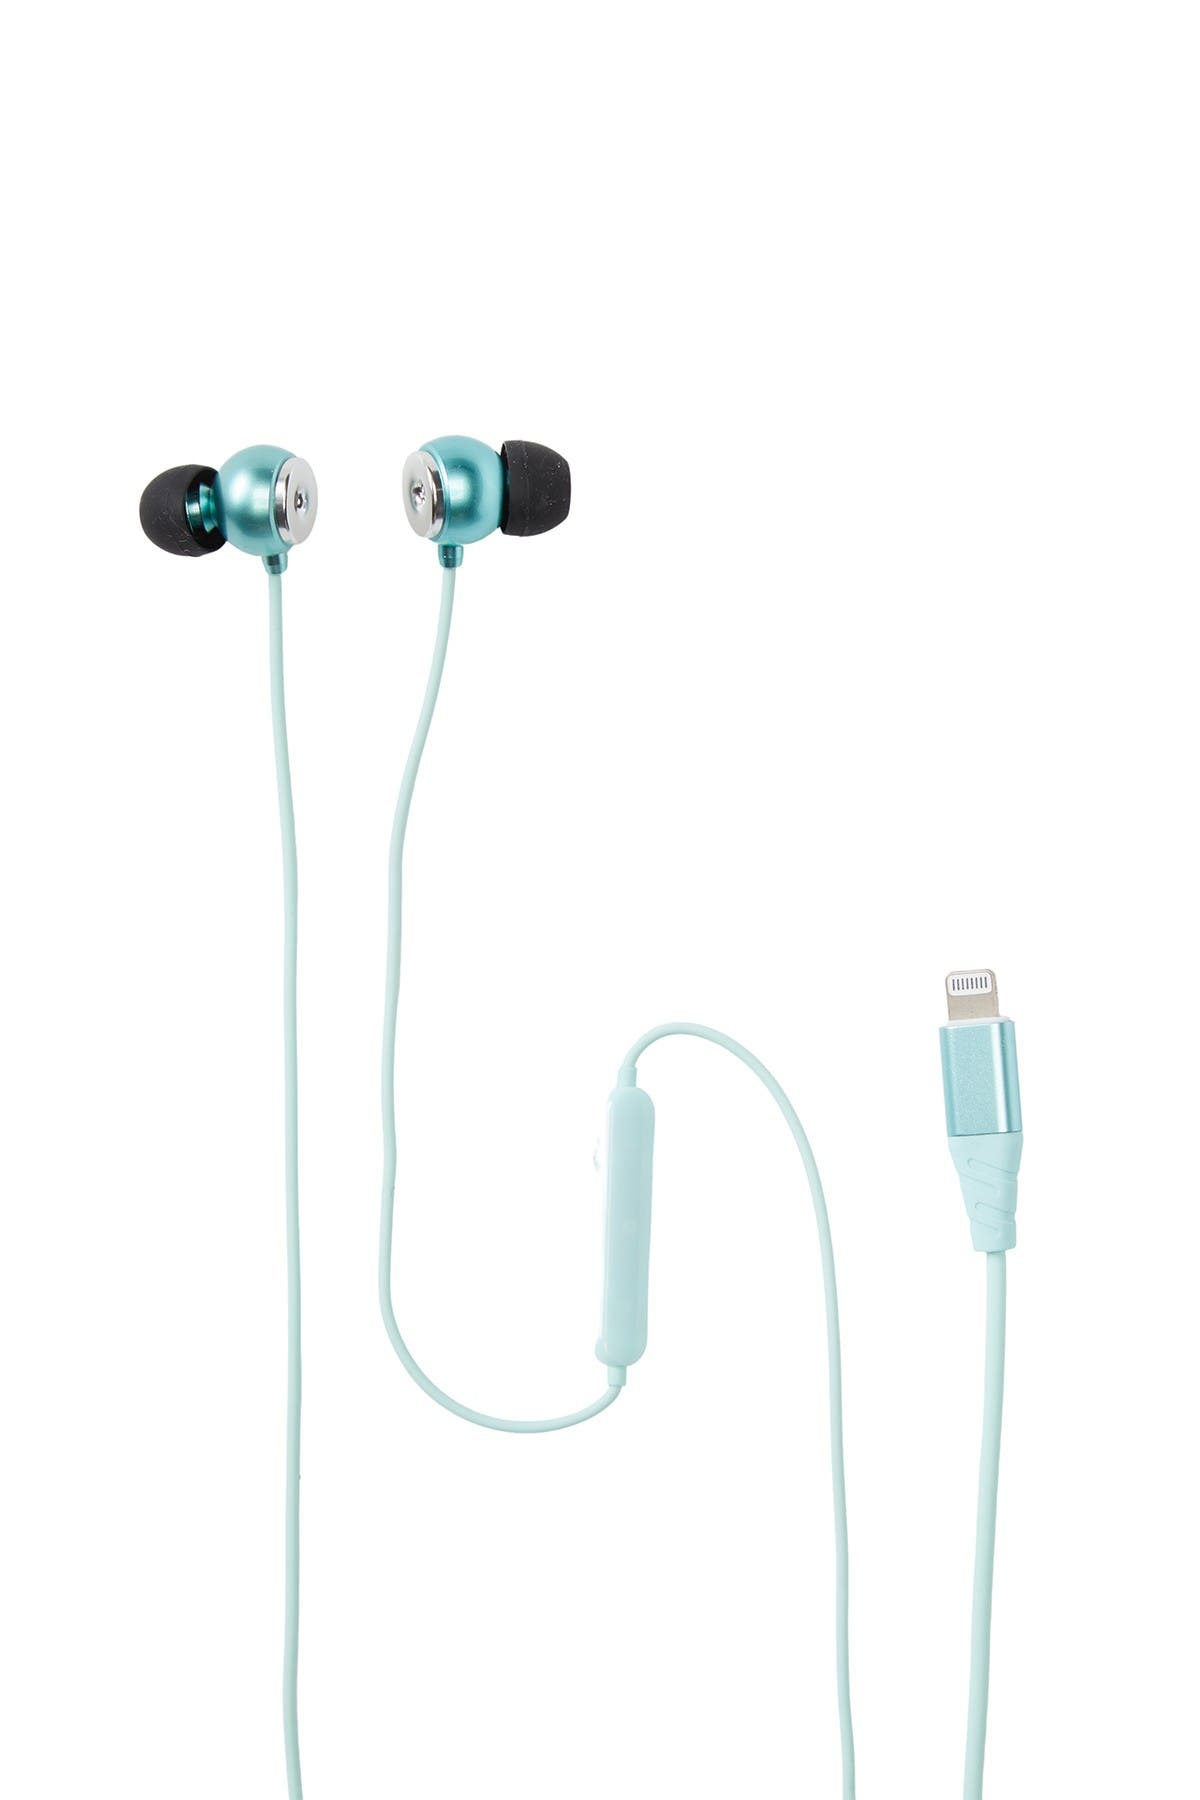 Image of Retrak Wired Ear Buds - Green